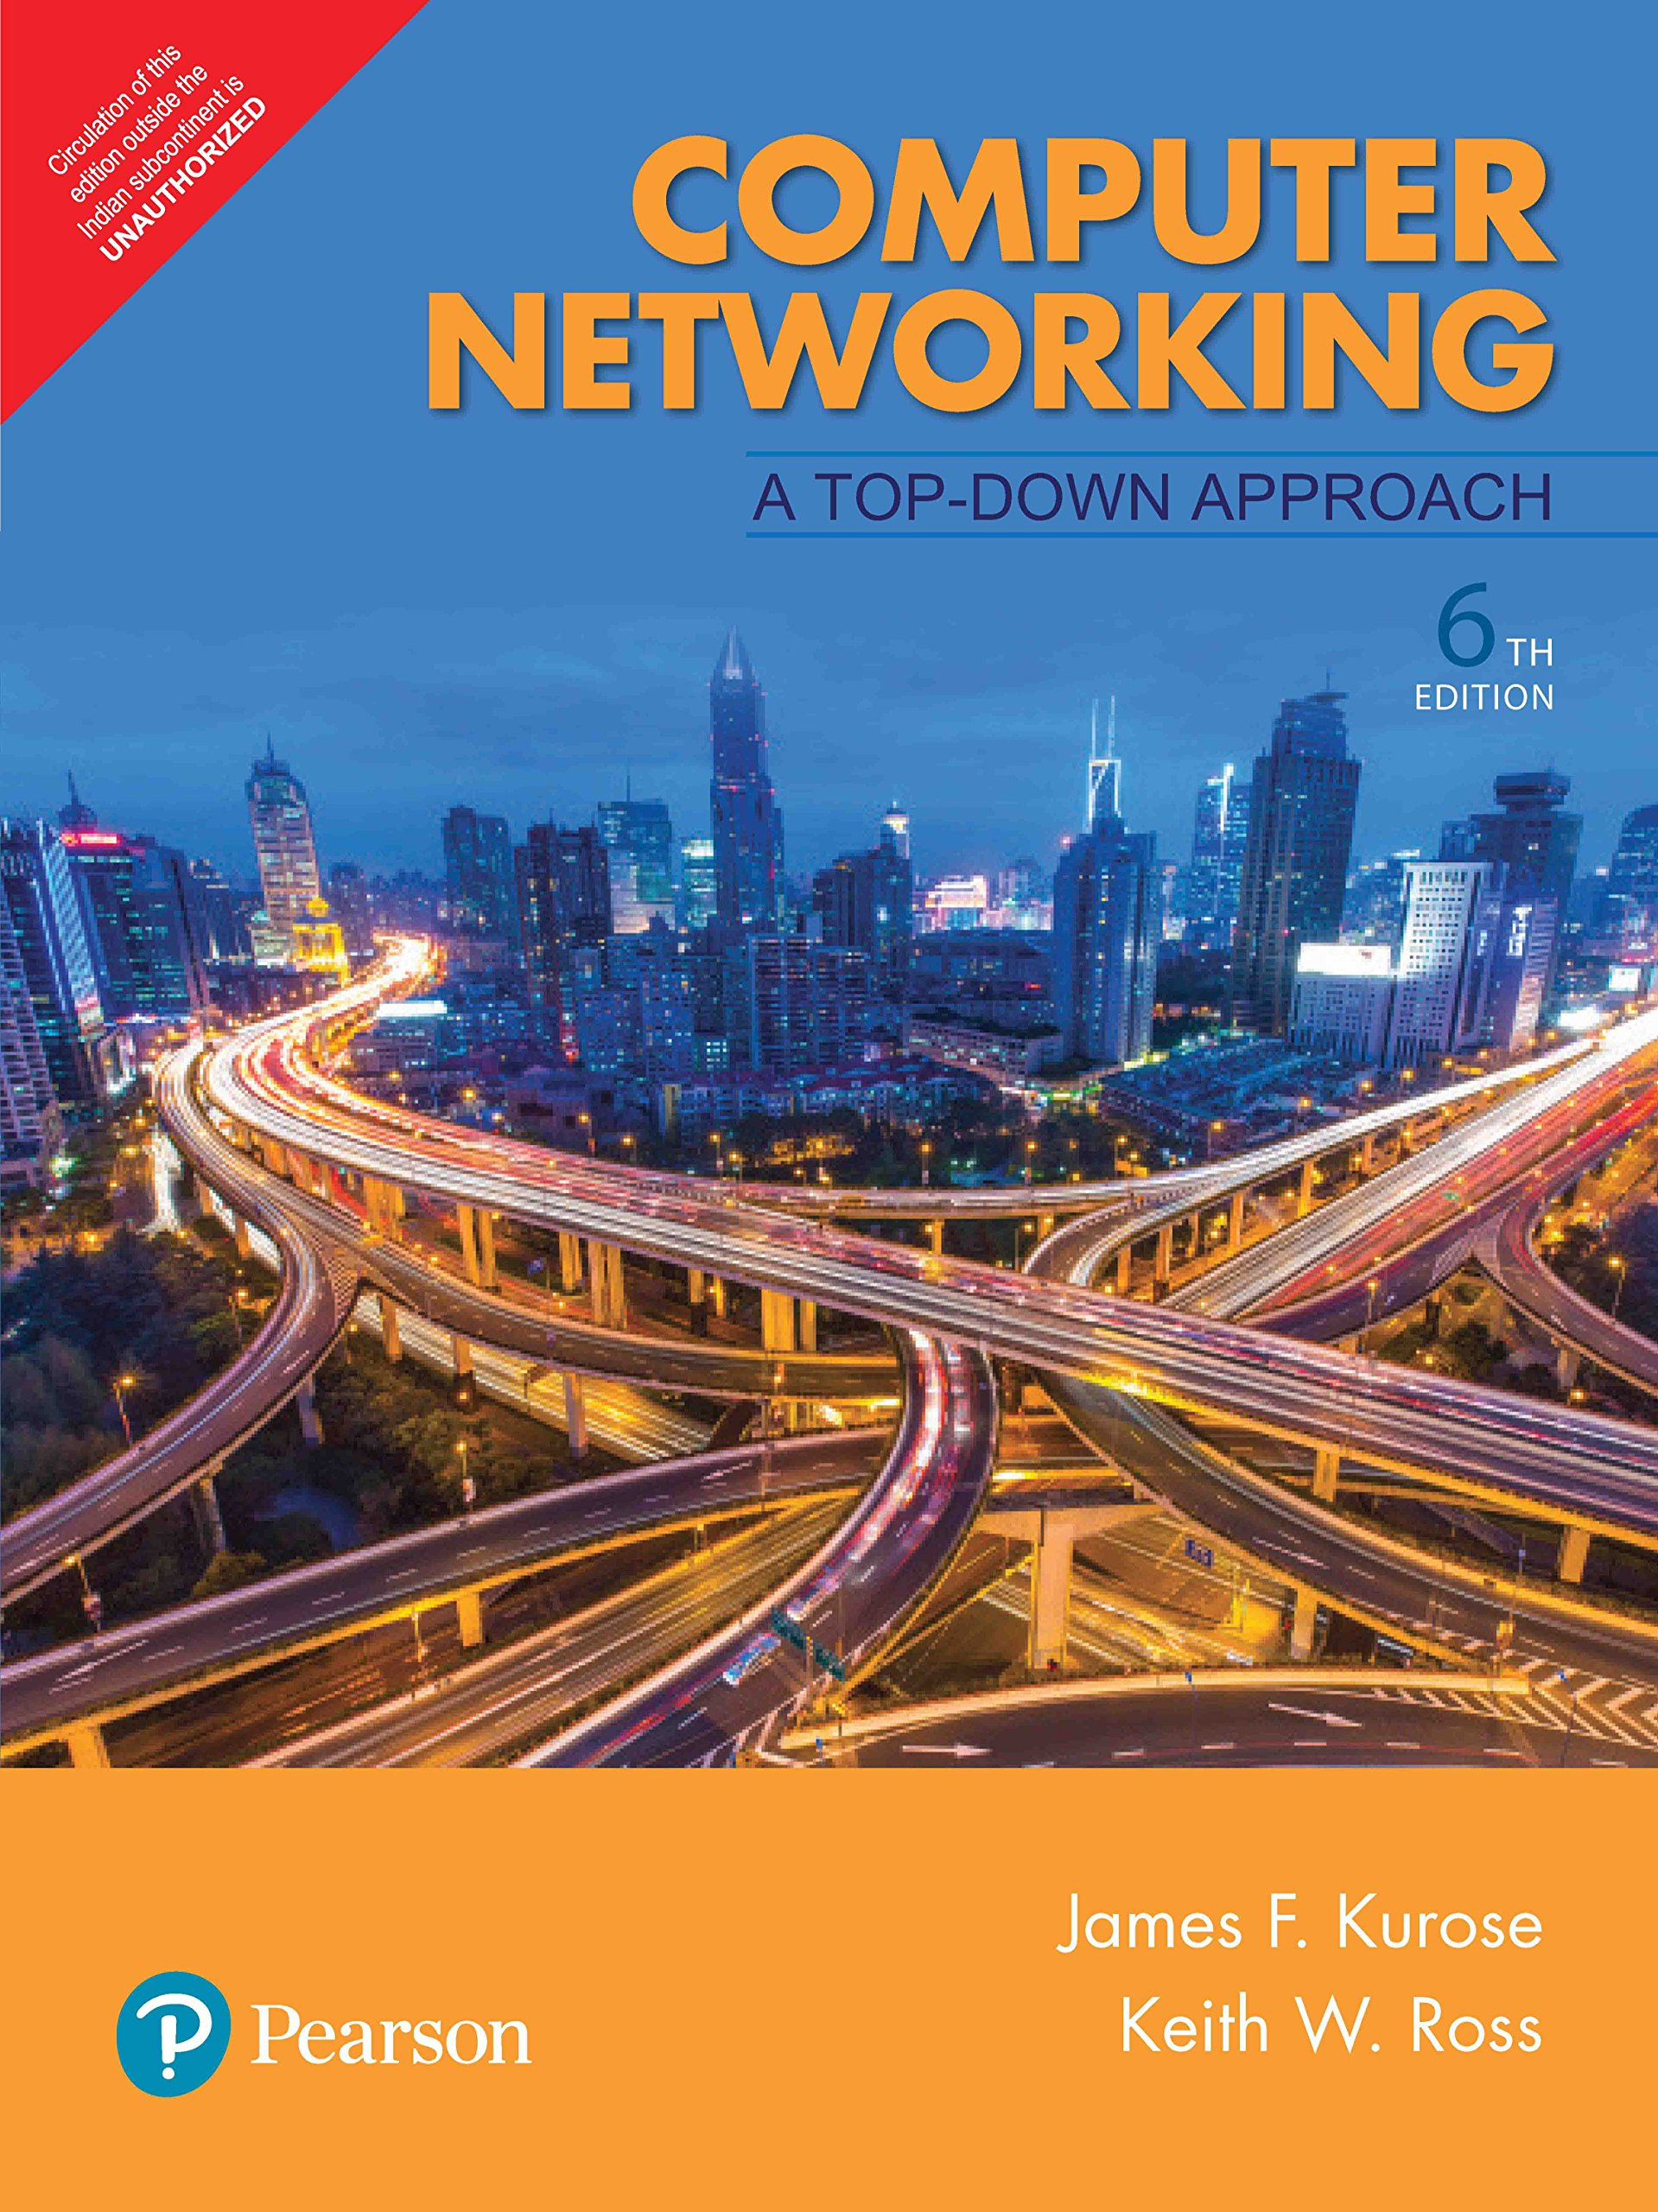 Computer networking: a top-down approach, 6th edn: ross keith w.